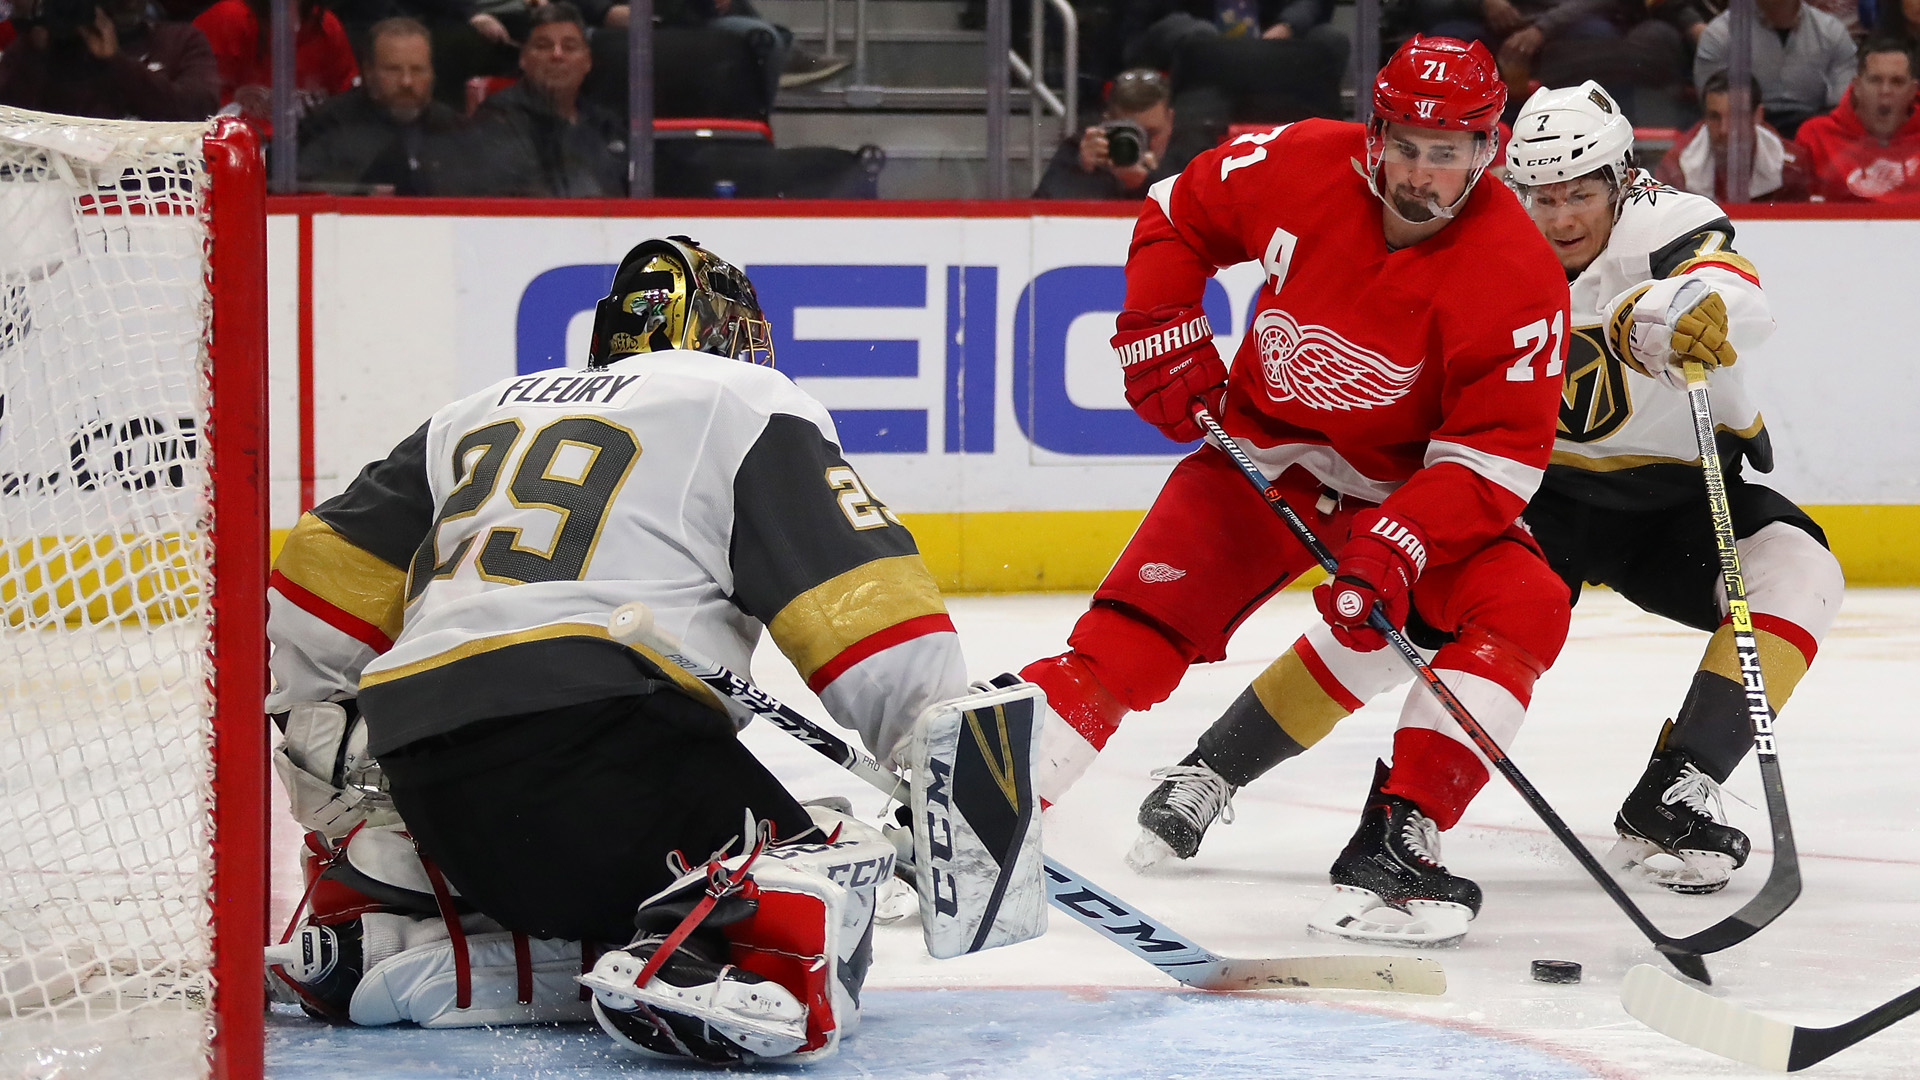 detroit red wings dylan larkin 020719 getty_2019020791540150.jpg_1549598355462